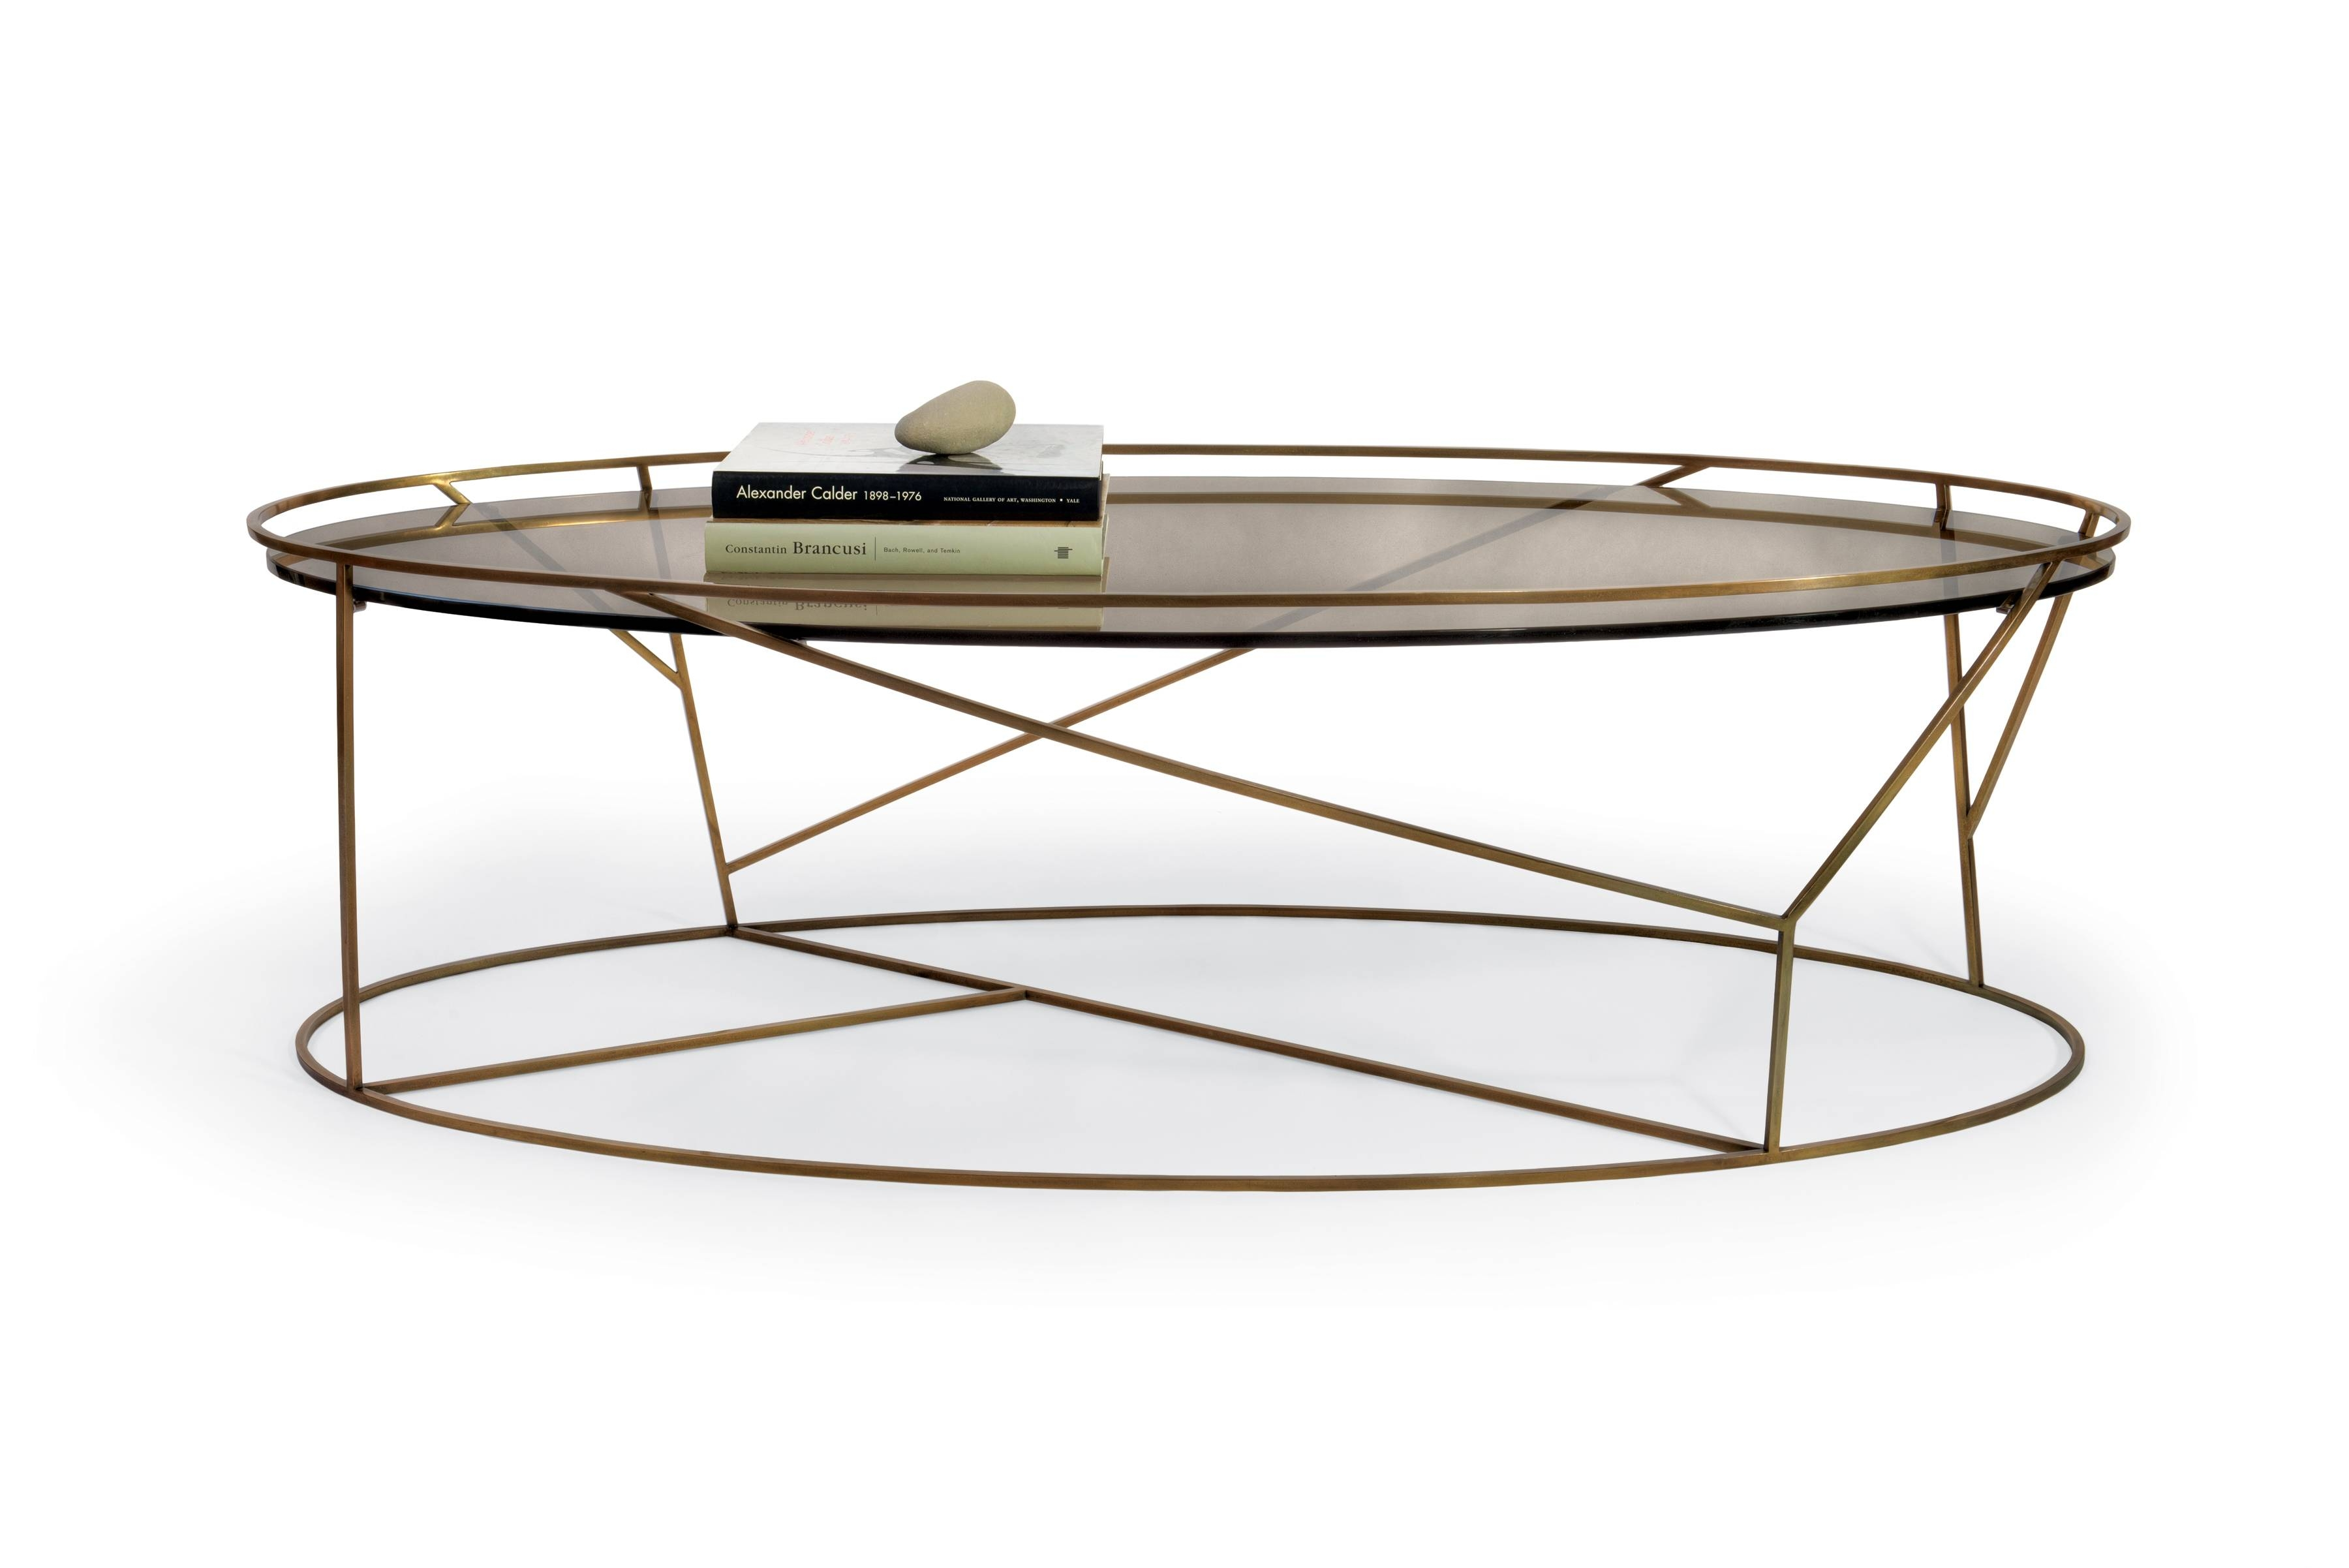 Round Metal And Glass Coffee Table - Jericho Mafjar Project pertaining to Coffee Tables Metal and Glass (Image 29 of 30)